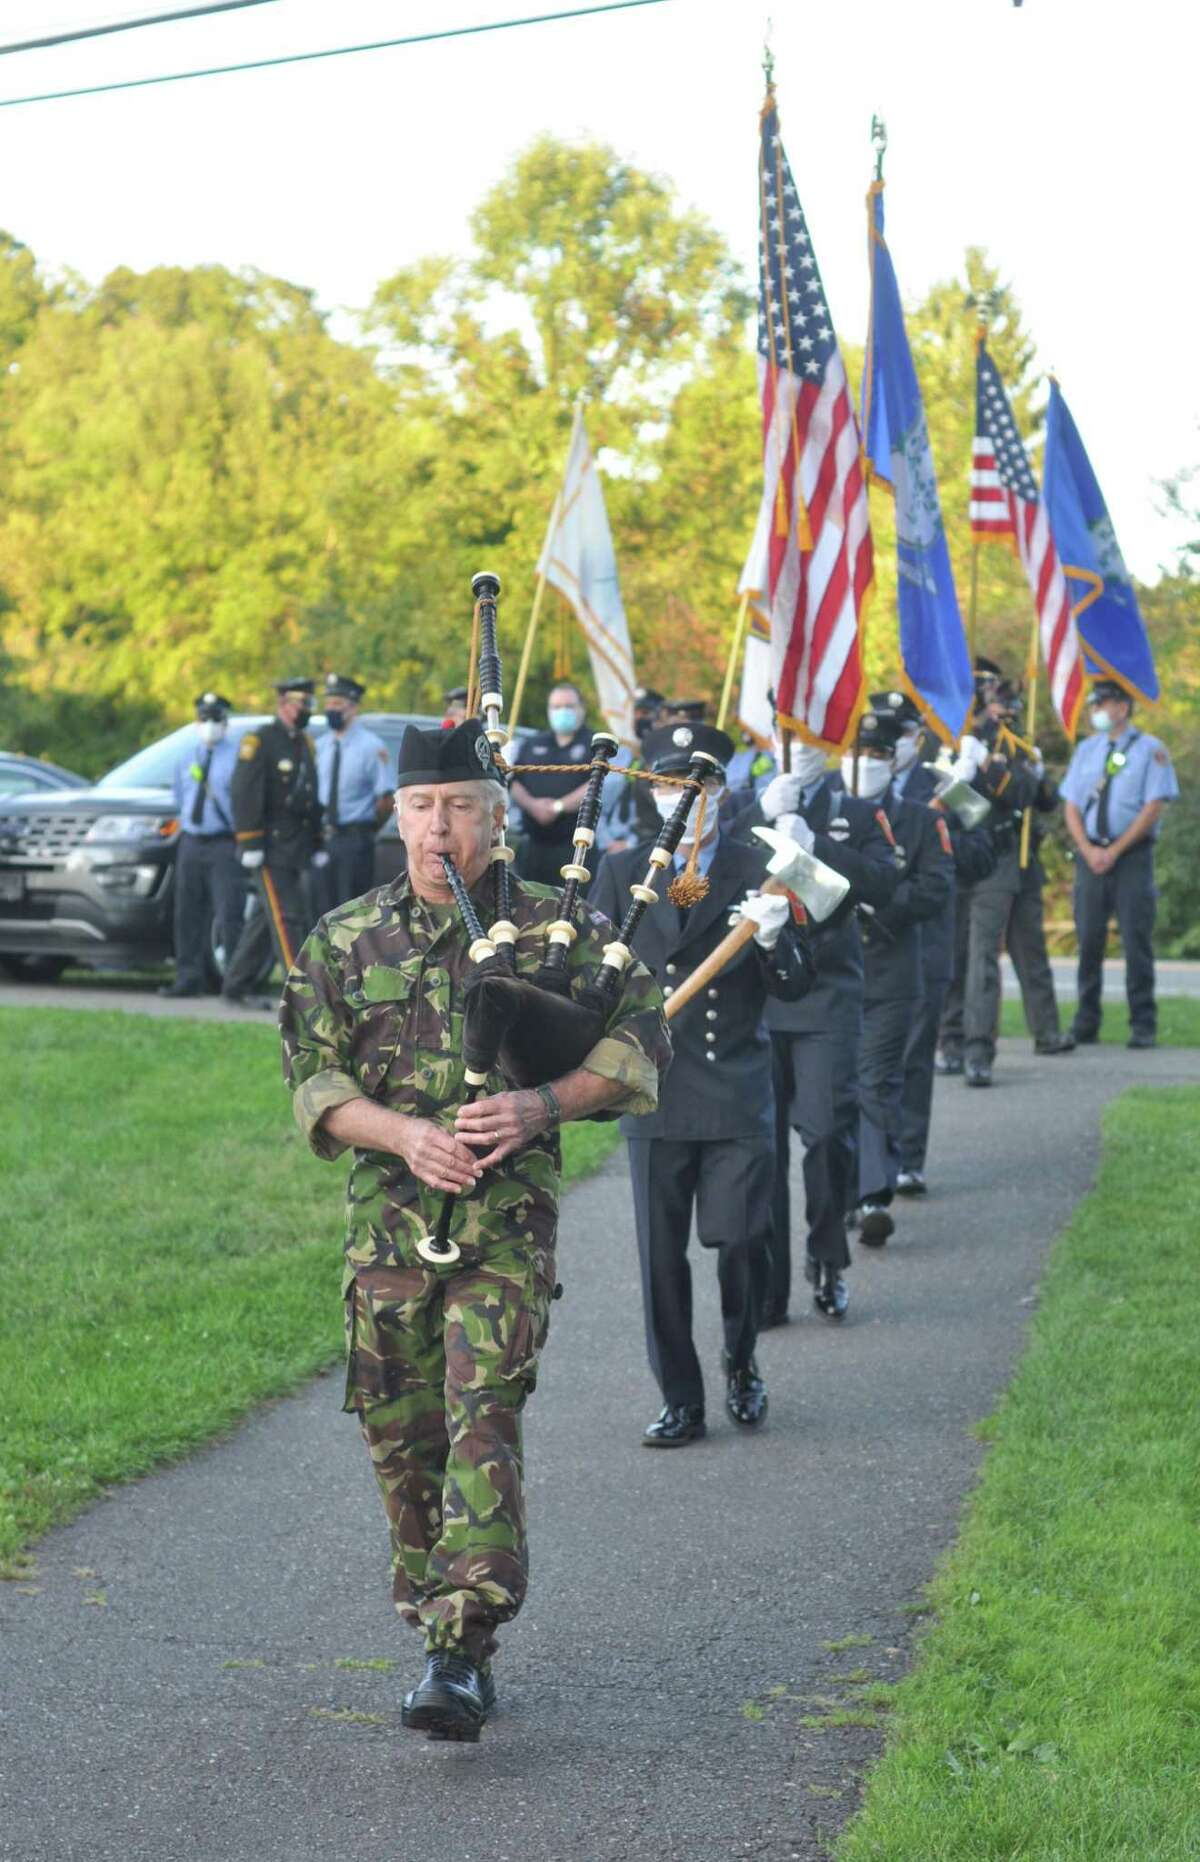 Piper Tom Elliott led in the color guard of Ridgefield firefighters and honor guard of Ridgefield police officers at the town's Sept. 11 ceremony for 2020 - the 19th year the event has been remembered with observance in town.